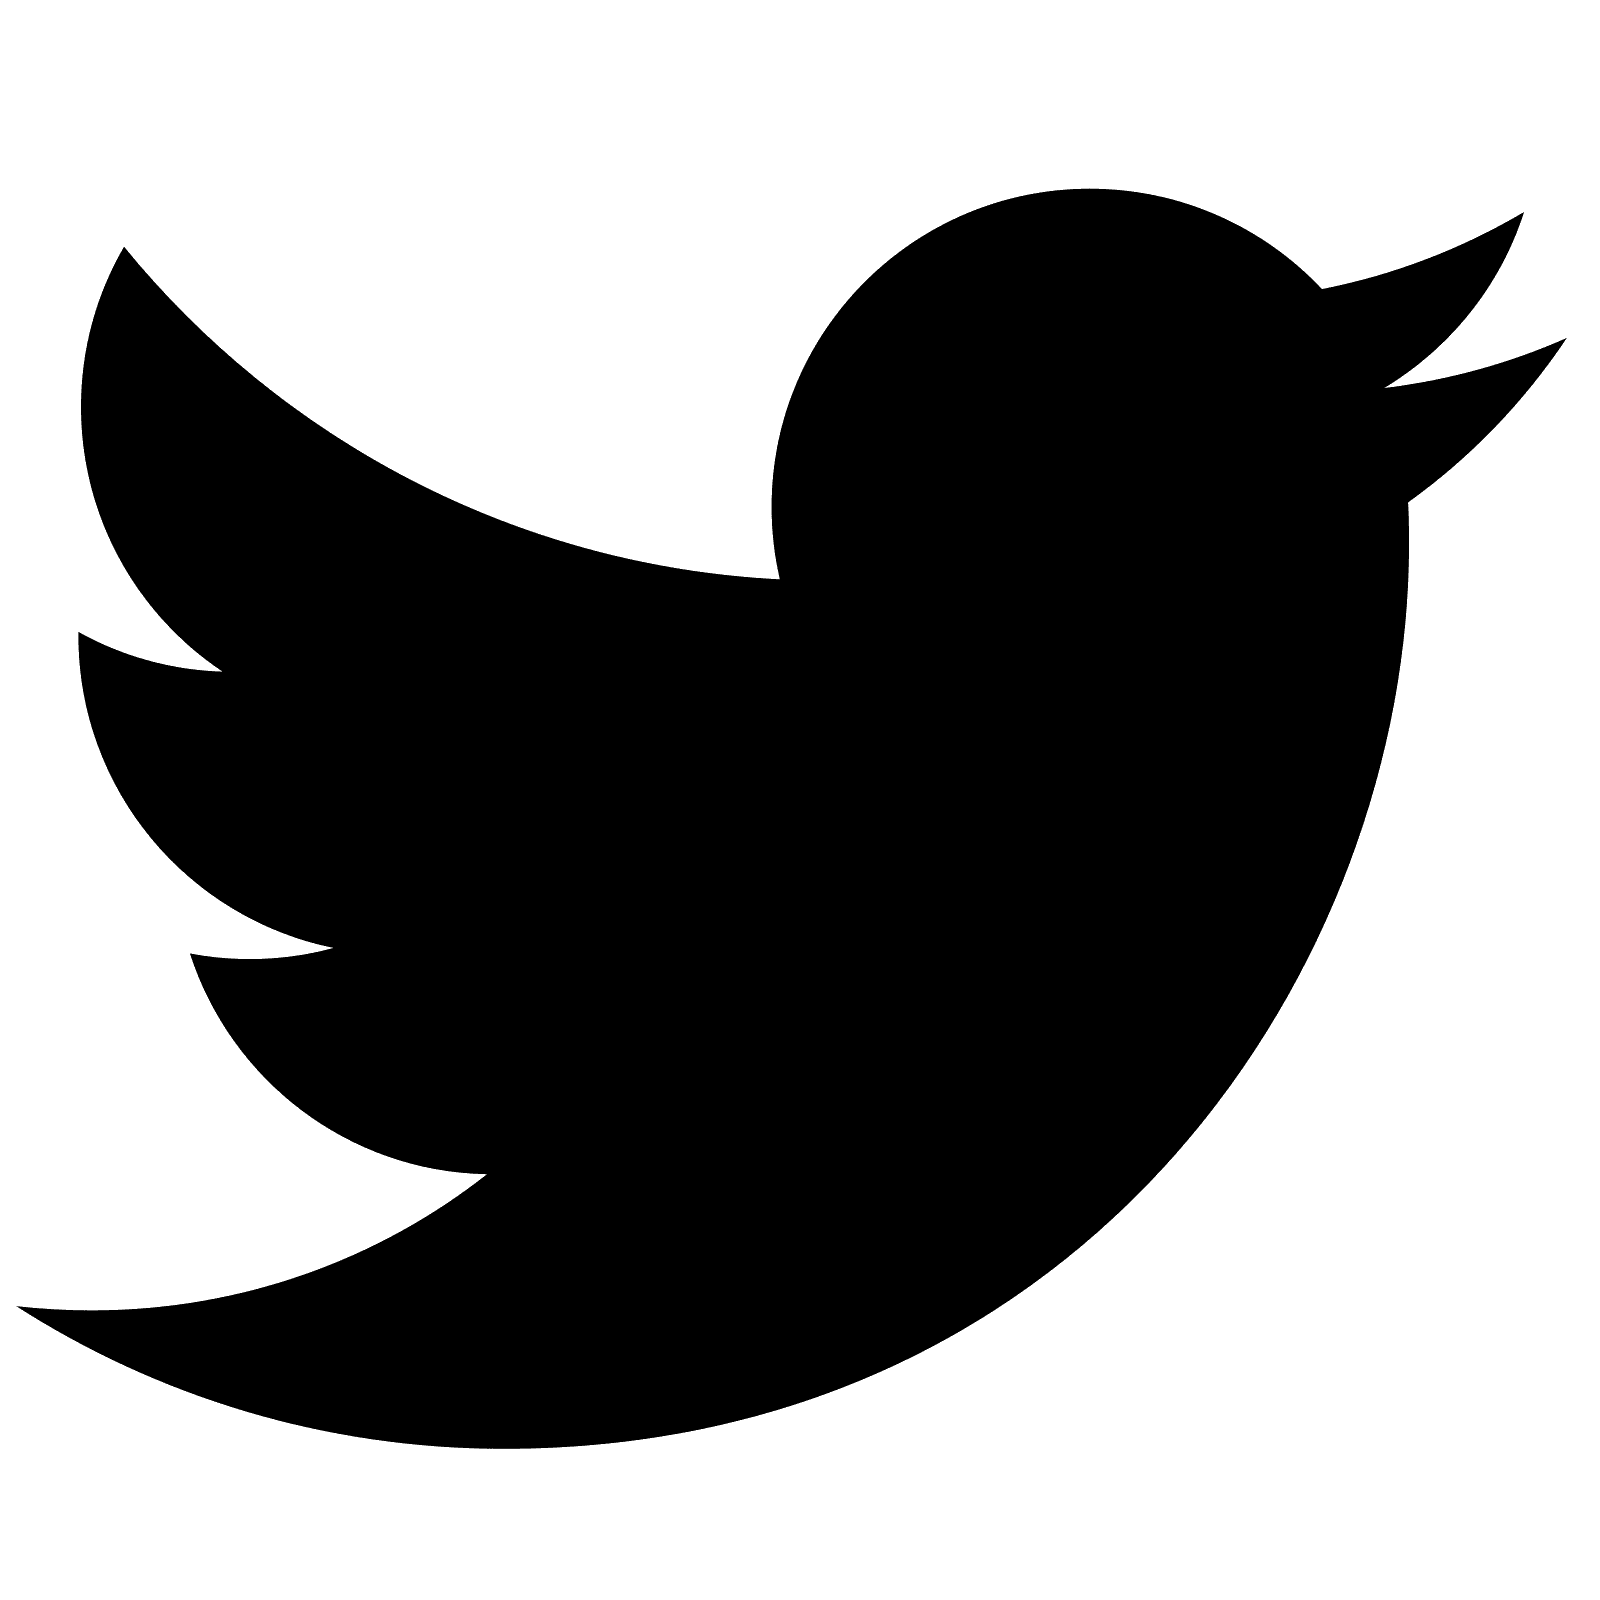 Twitter's shares are down after losing 1 million users in Q2 of 2018